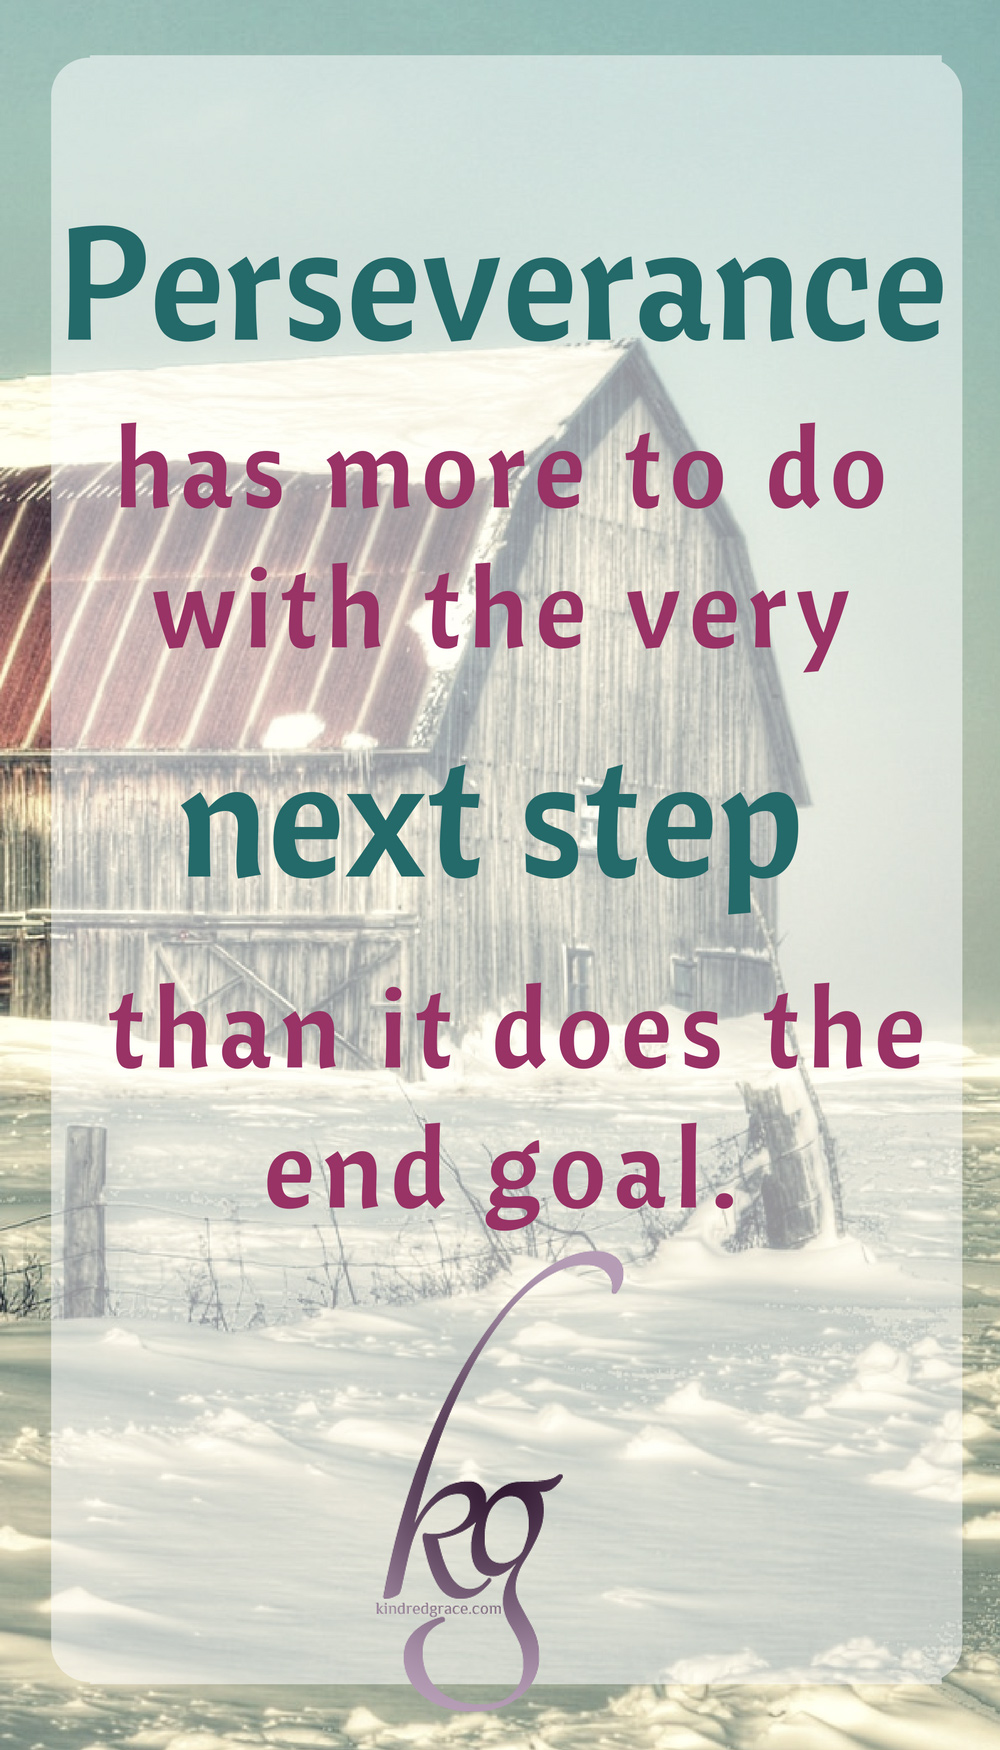 Perseverance, it turns out, has more to do with the very next step than it does the end goal.